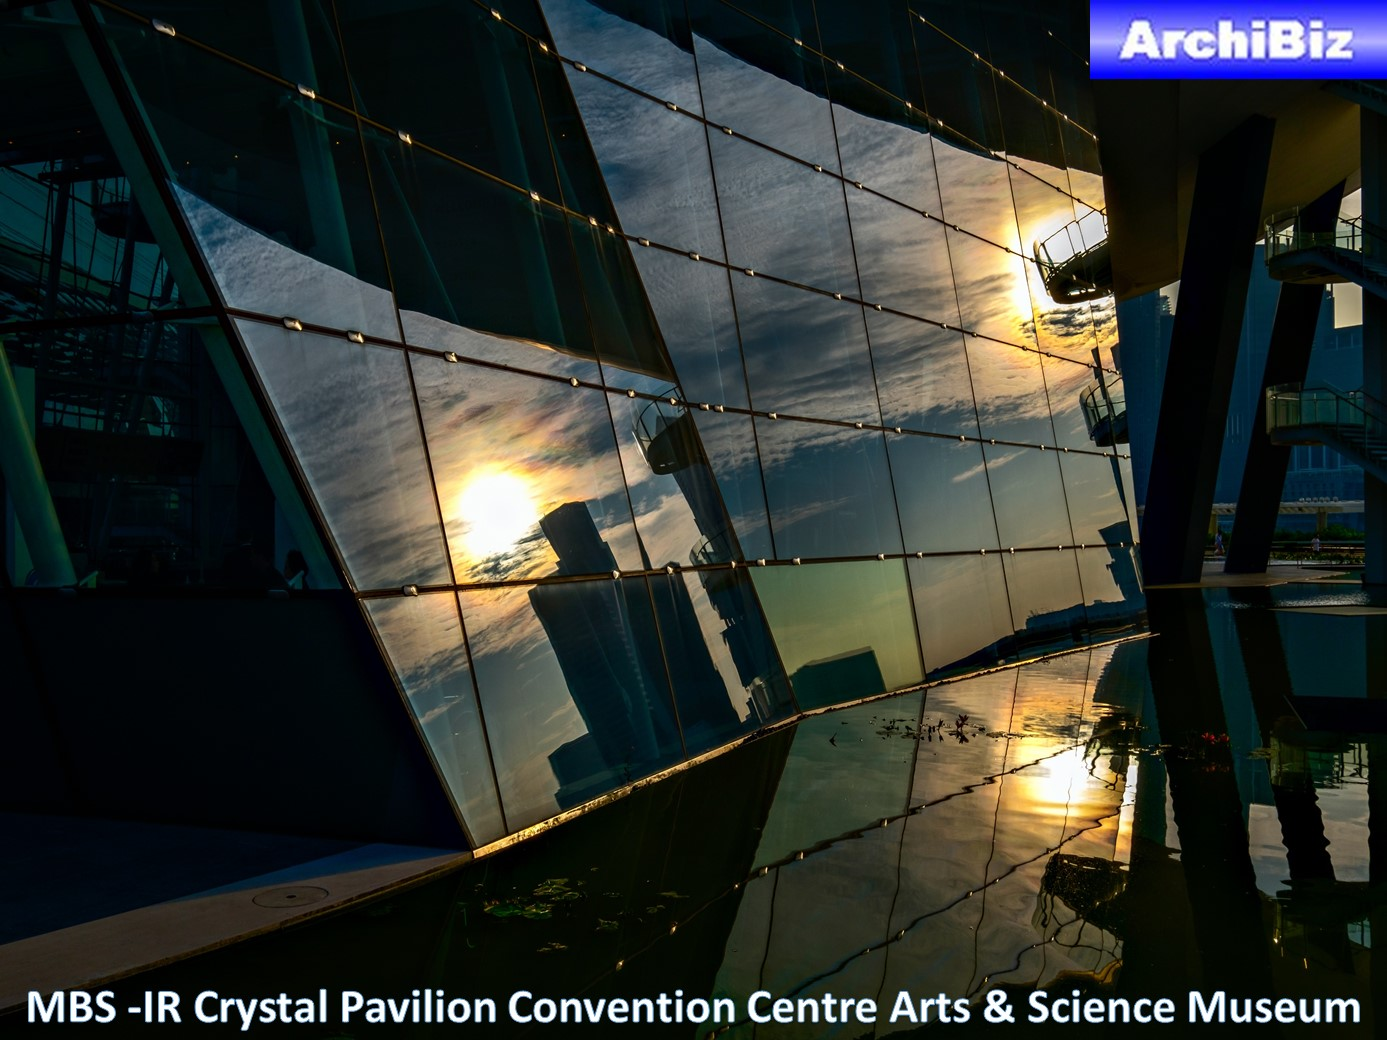 MBS -IR Crystal Pavilion Convention Centre Arts & Science Museum (14)